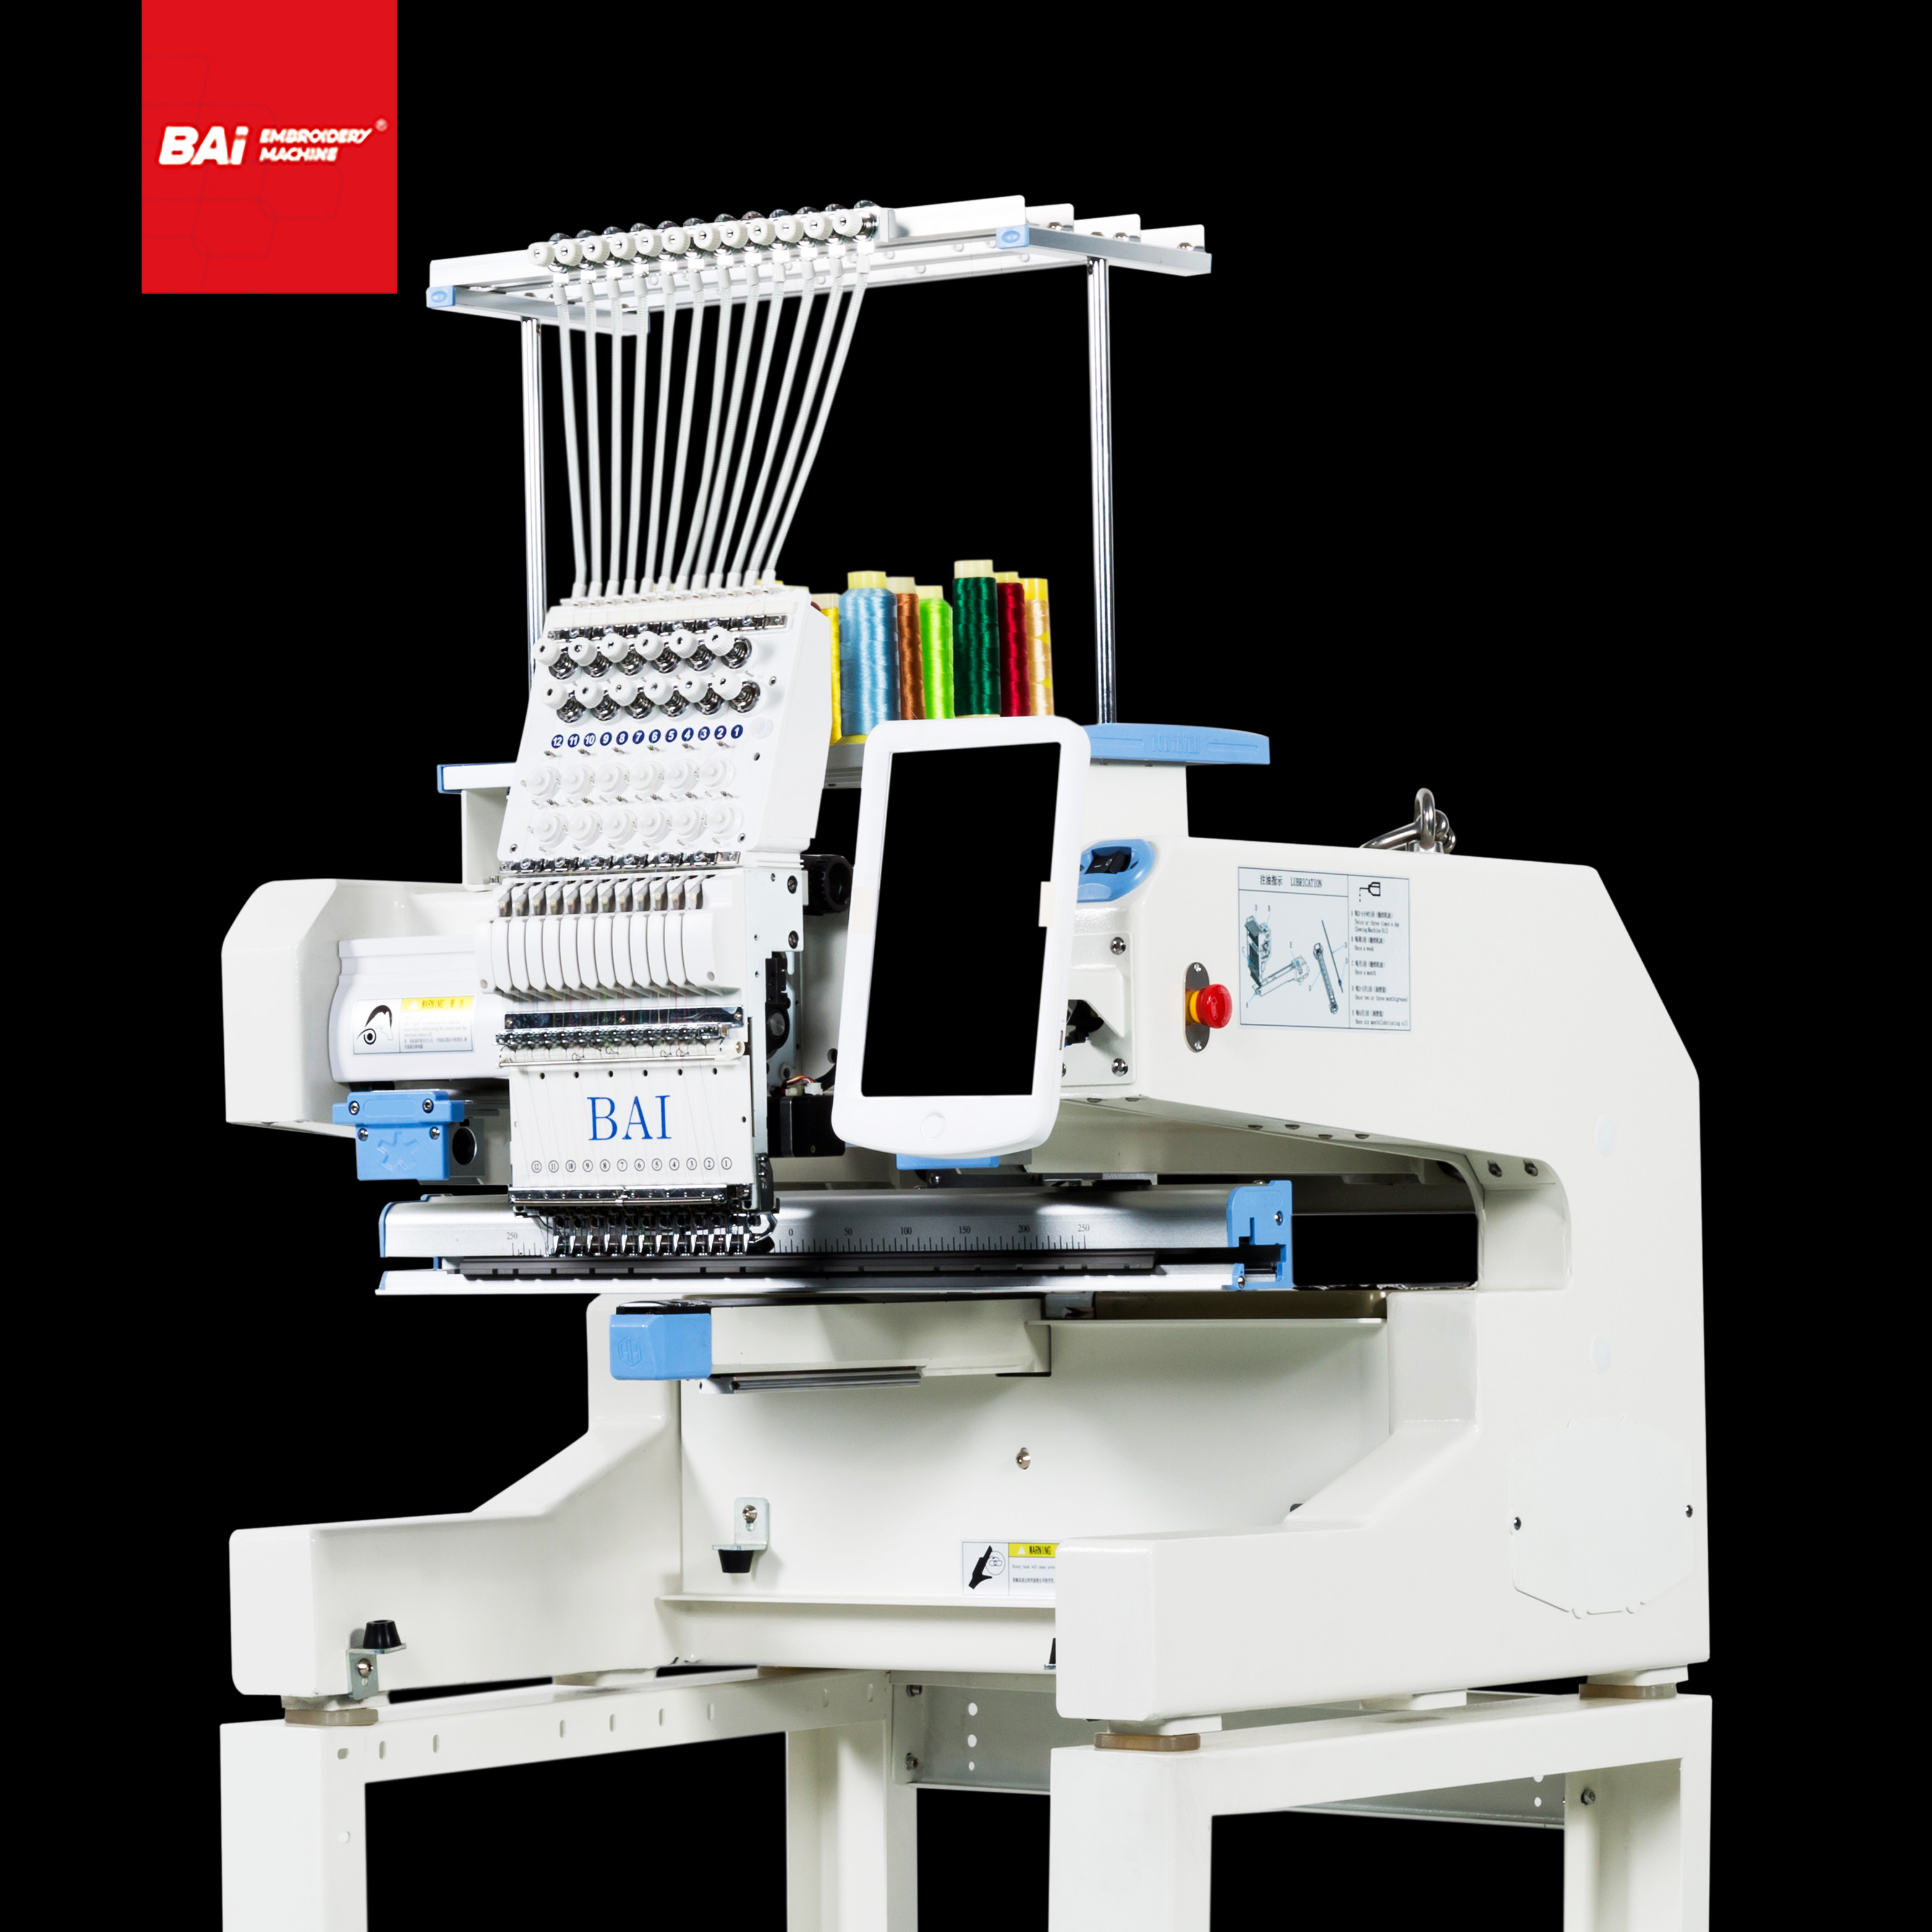 BAI Computer Controlled Embroidery Machines for Machine Embroidery Designs